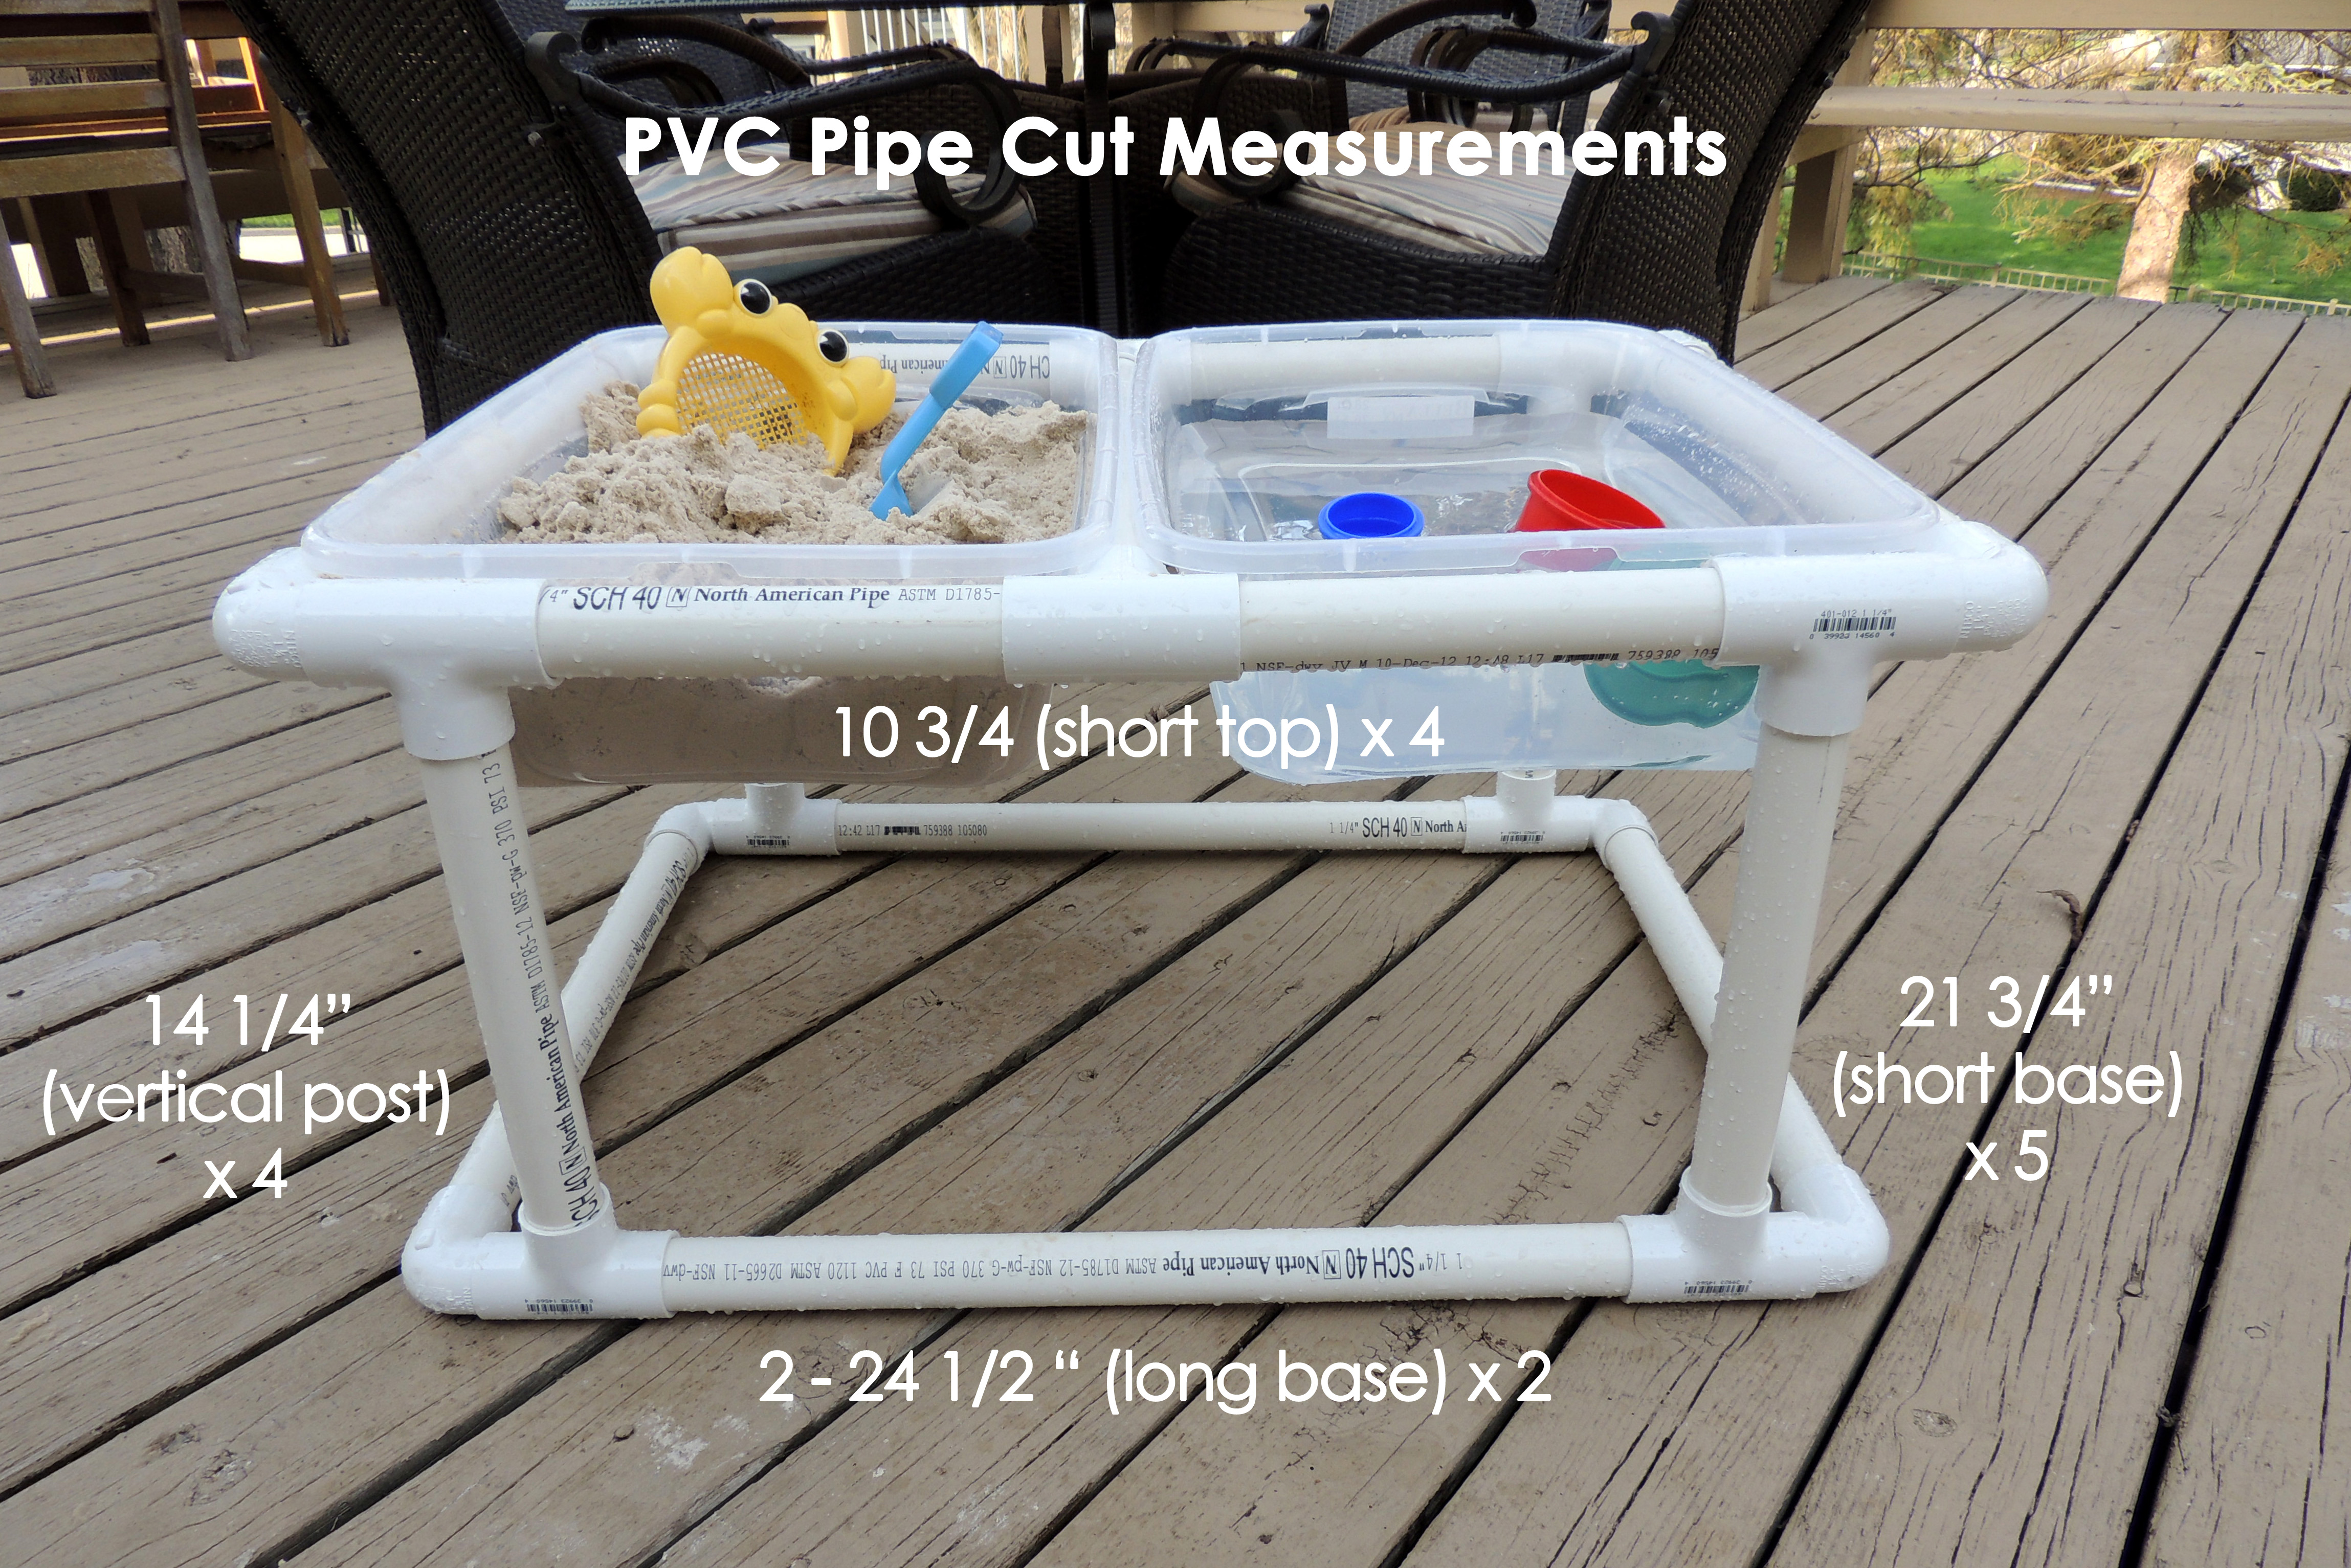 Pvc Pipe Patio Furniture Plans Free,Wood Projects Free Plans Pdf,Fence  Design Software Ipad   Test Out